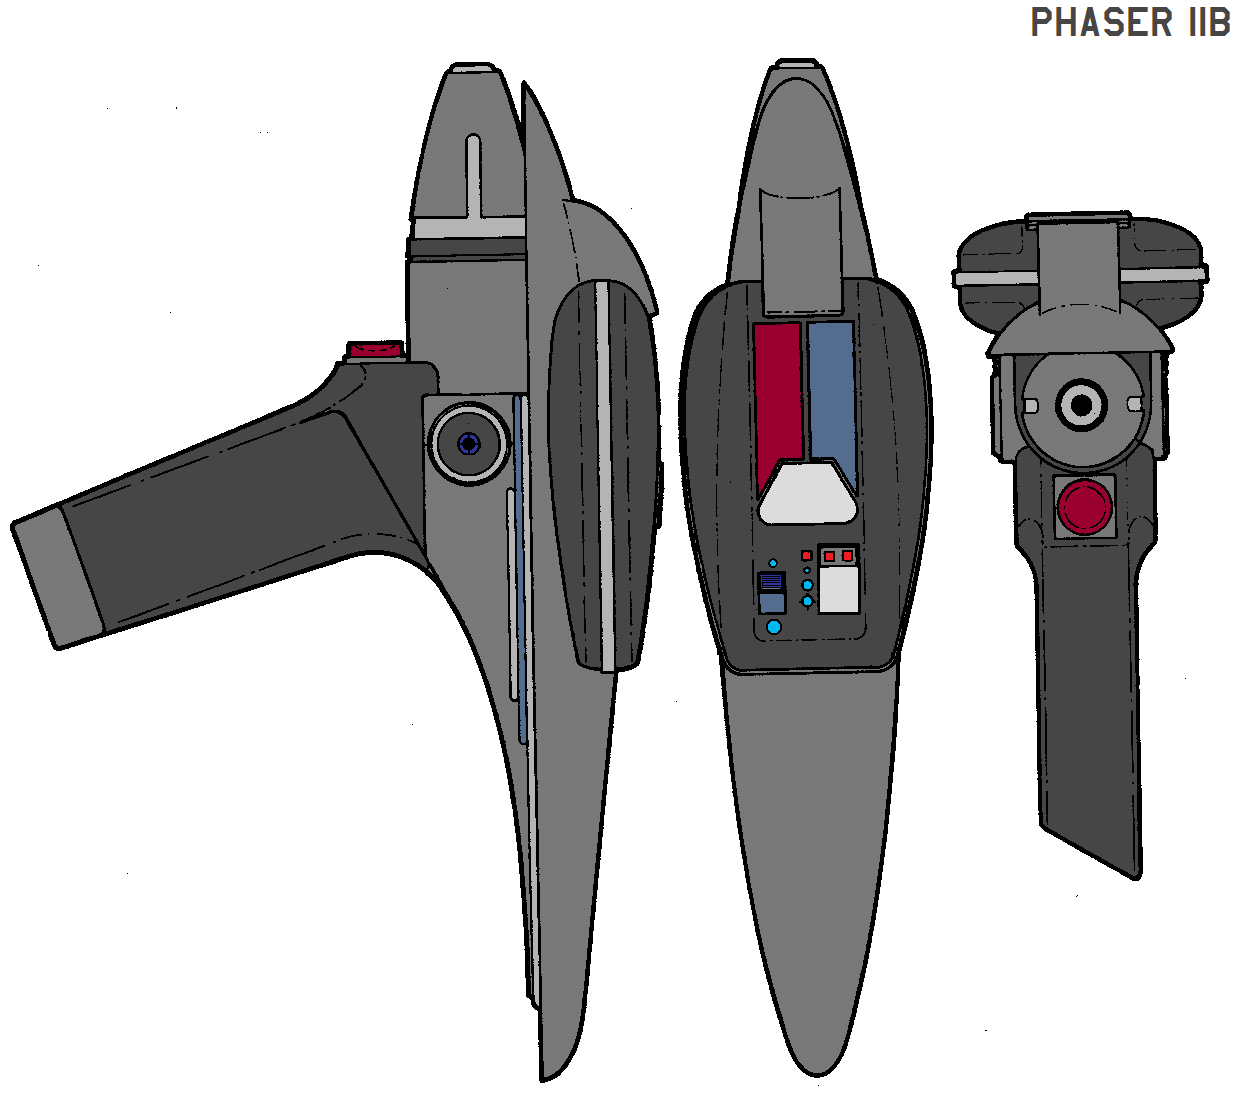 Phaser IIB by bagera3005